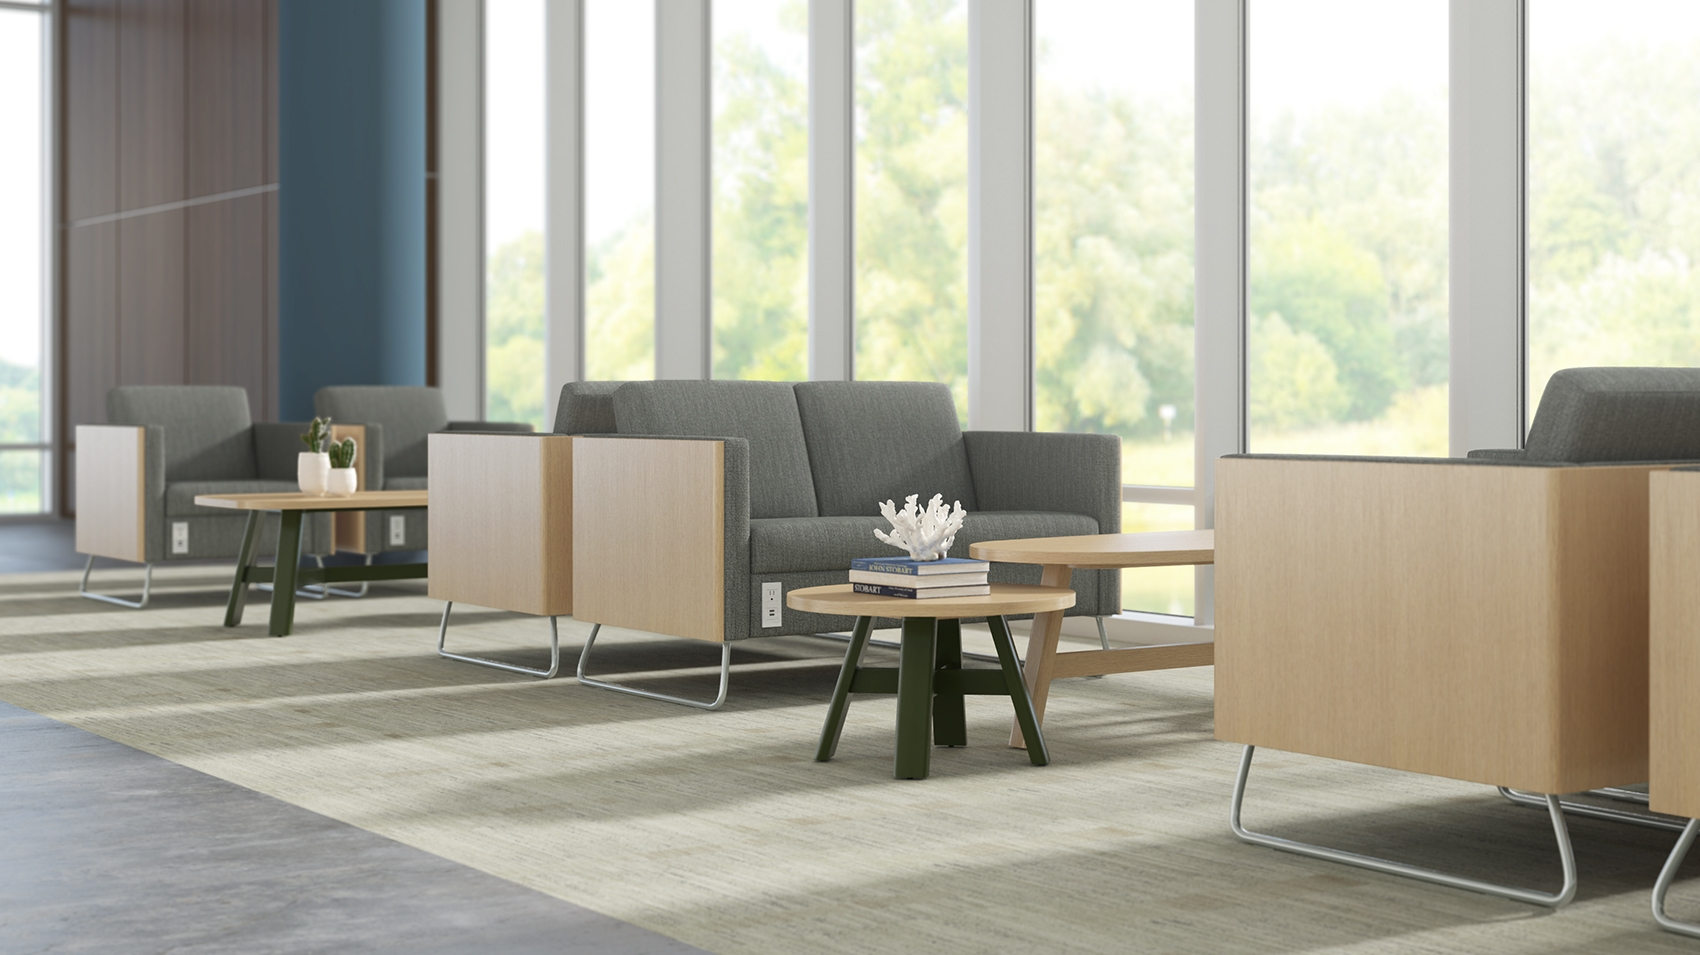 Cascade Occasional Tables Combine The Beauty Of Organic Shapes Inspired By  Nature With Interesting Material And Color Selections.